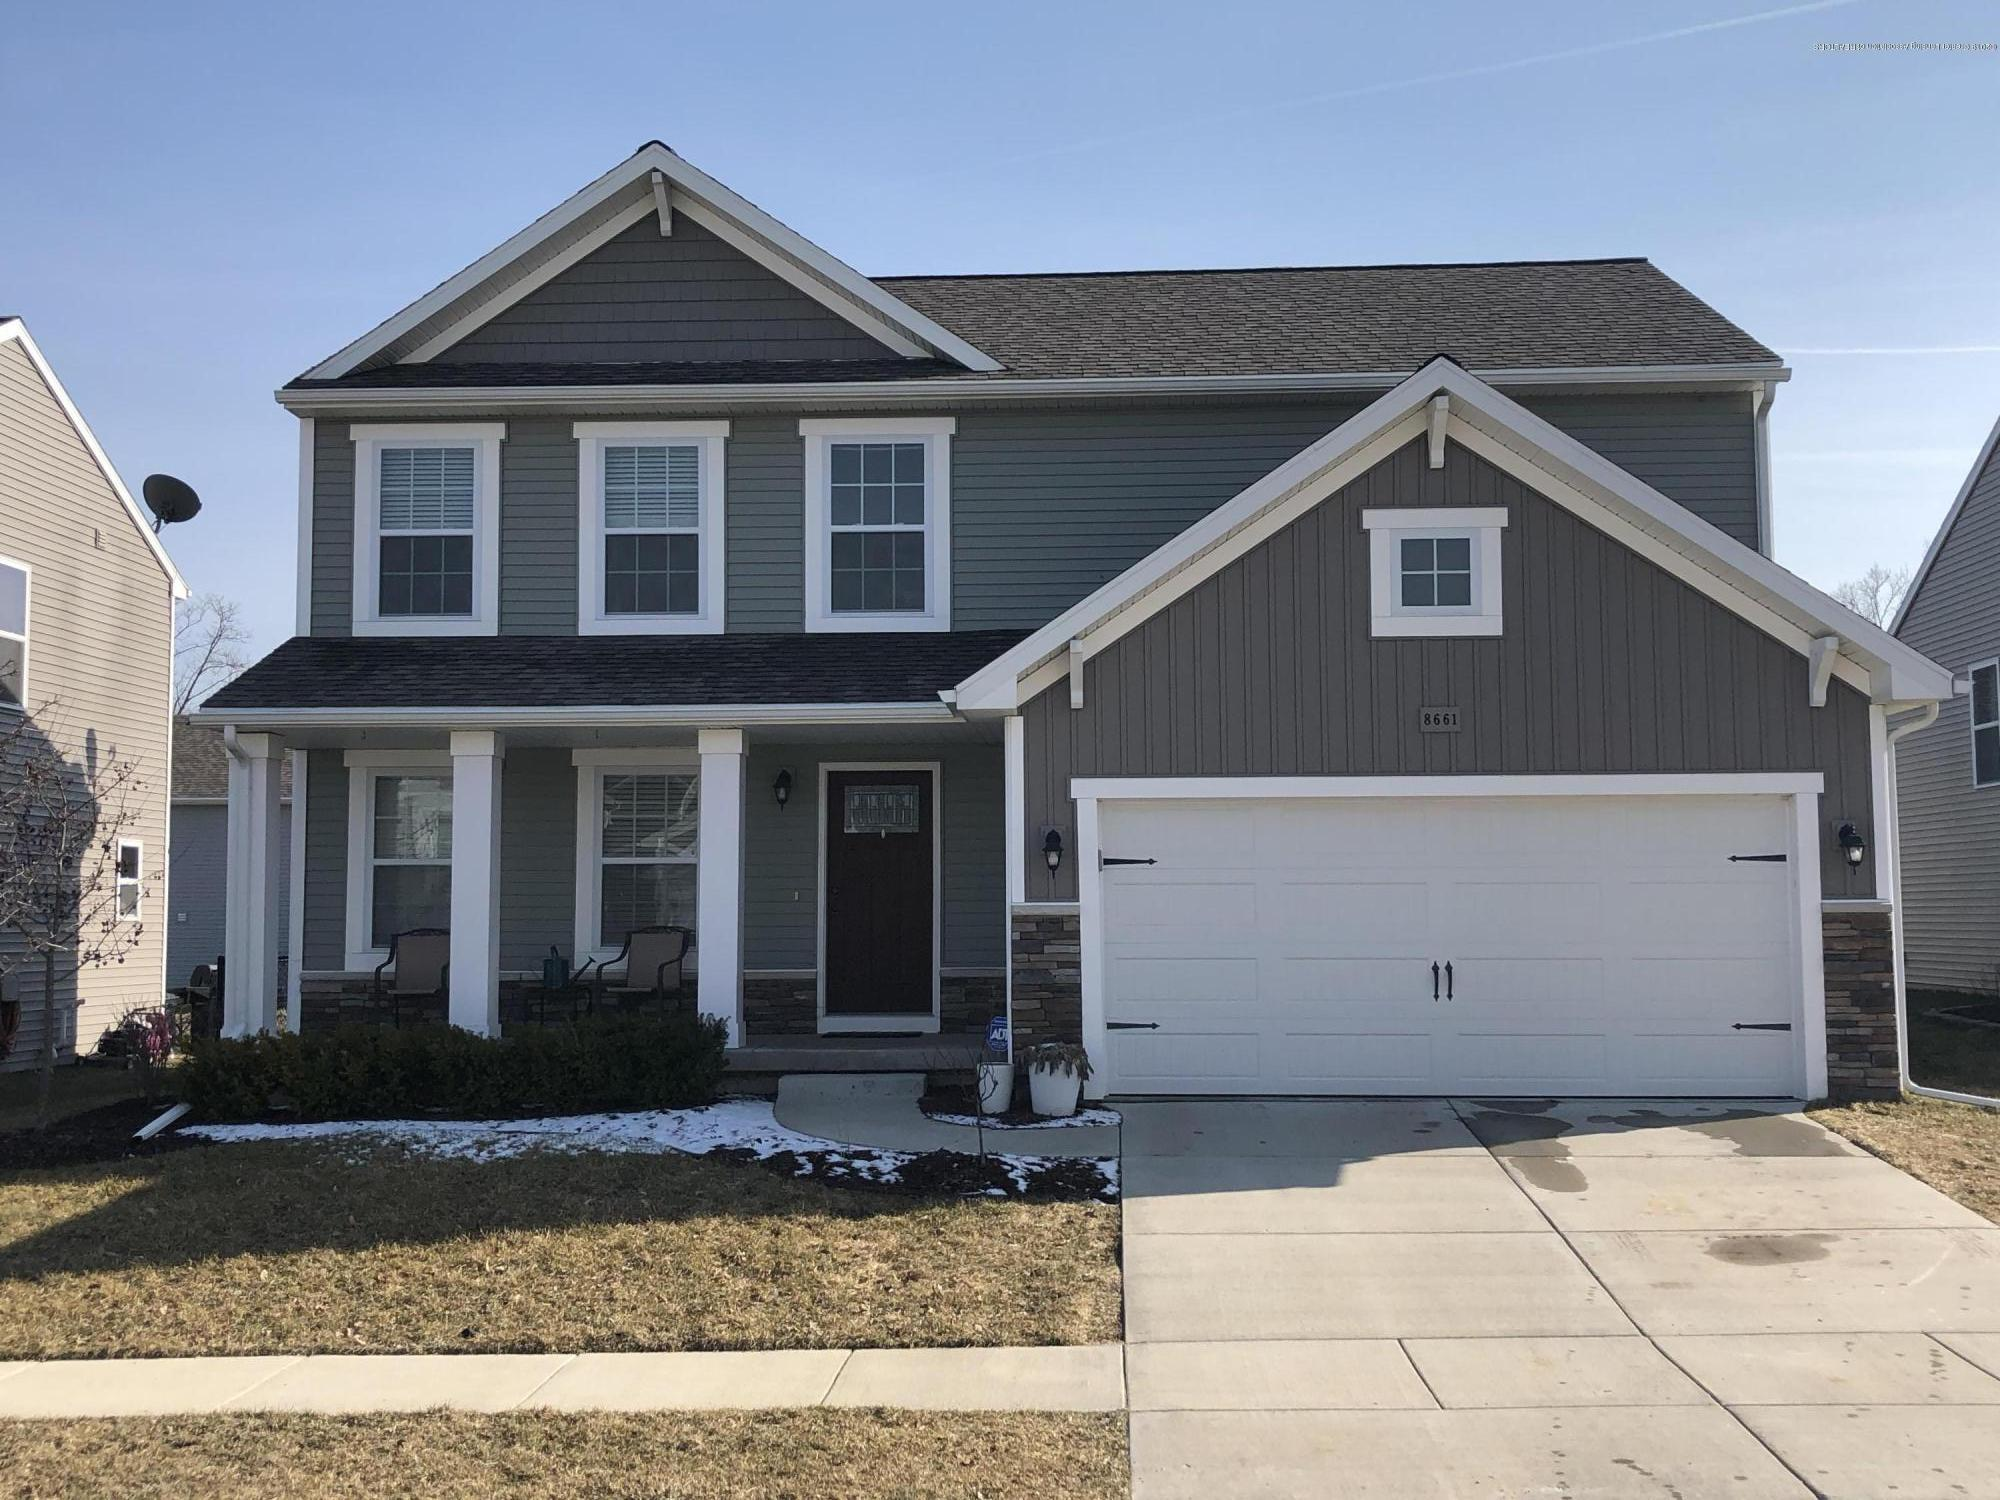 8661 Chippewa River Dr - IMG_7785.jpegKelsy - 1